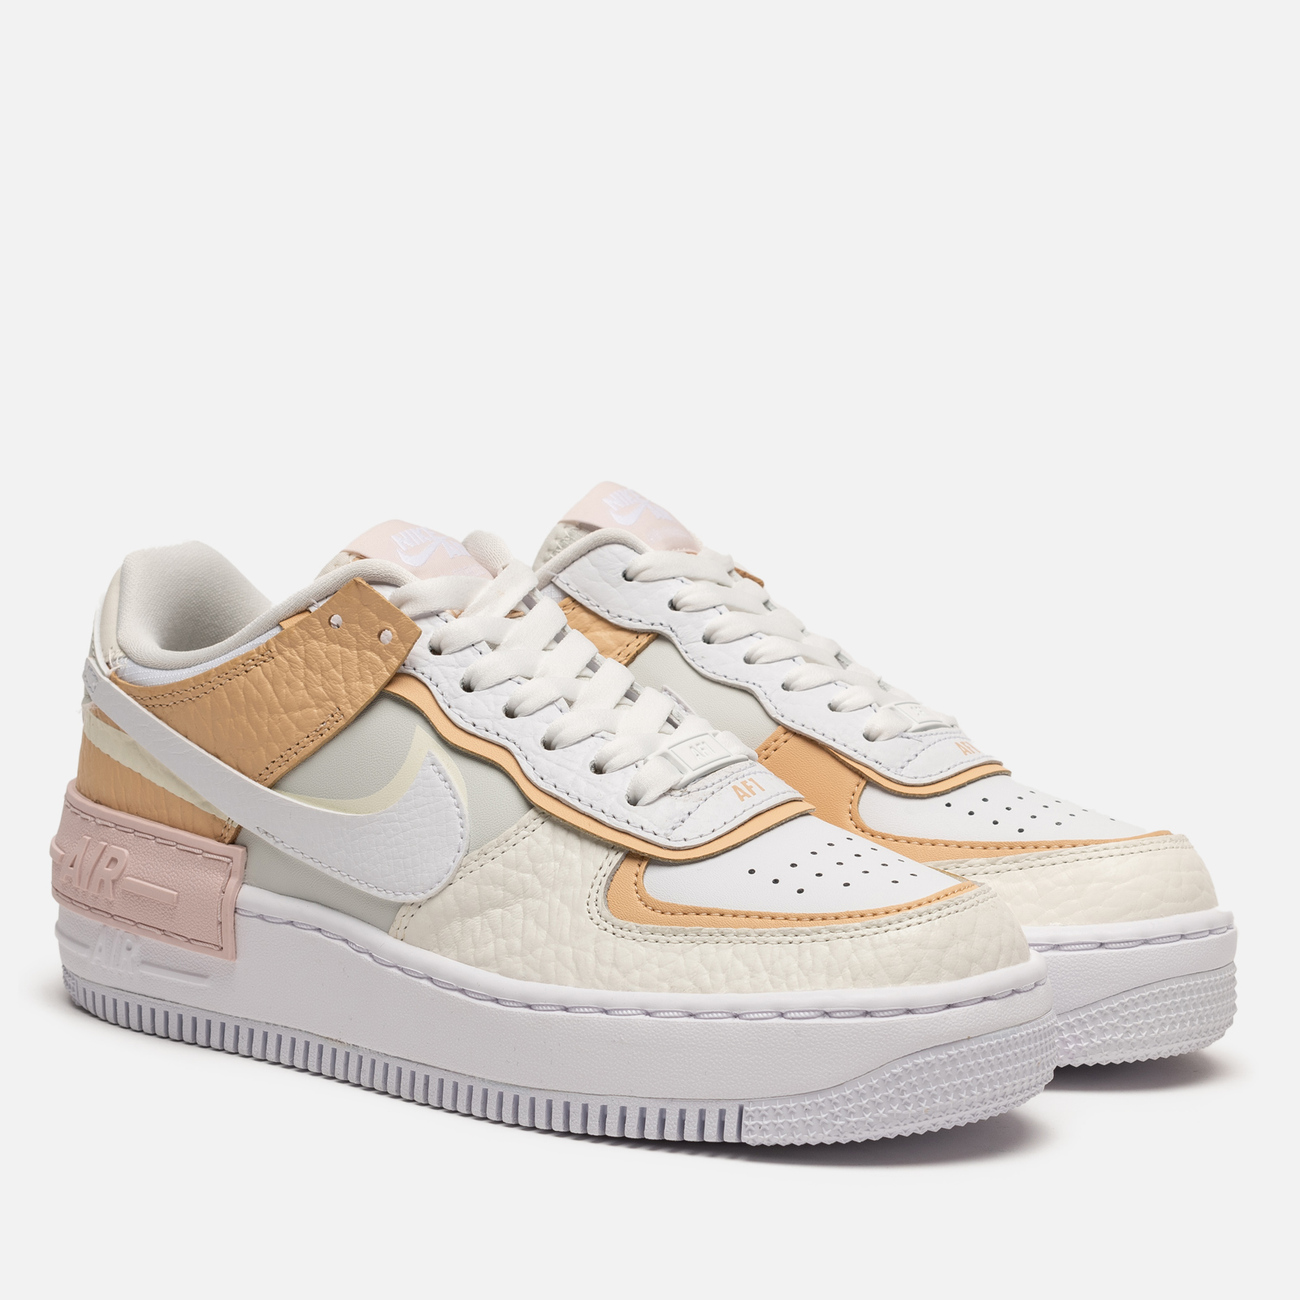 Женские кроссовки Nike Air Force 1 Shadow SE Spruce Aura/White/Sail/Black